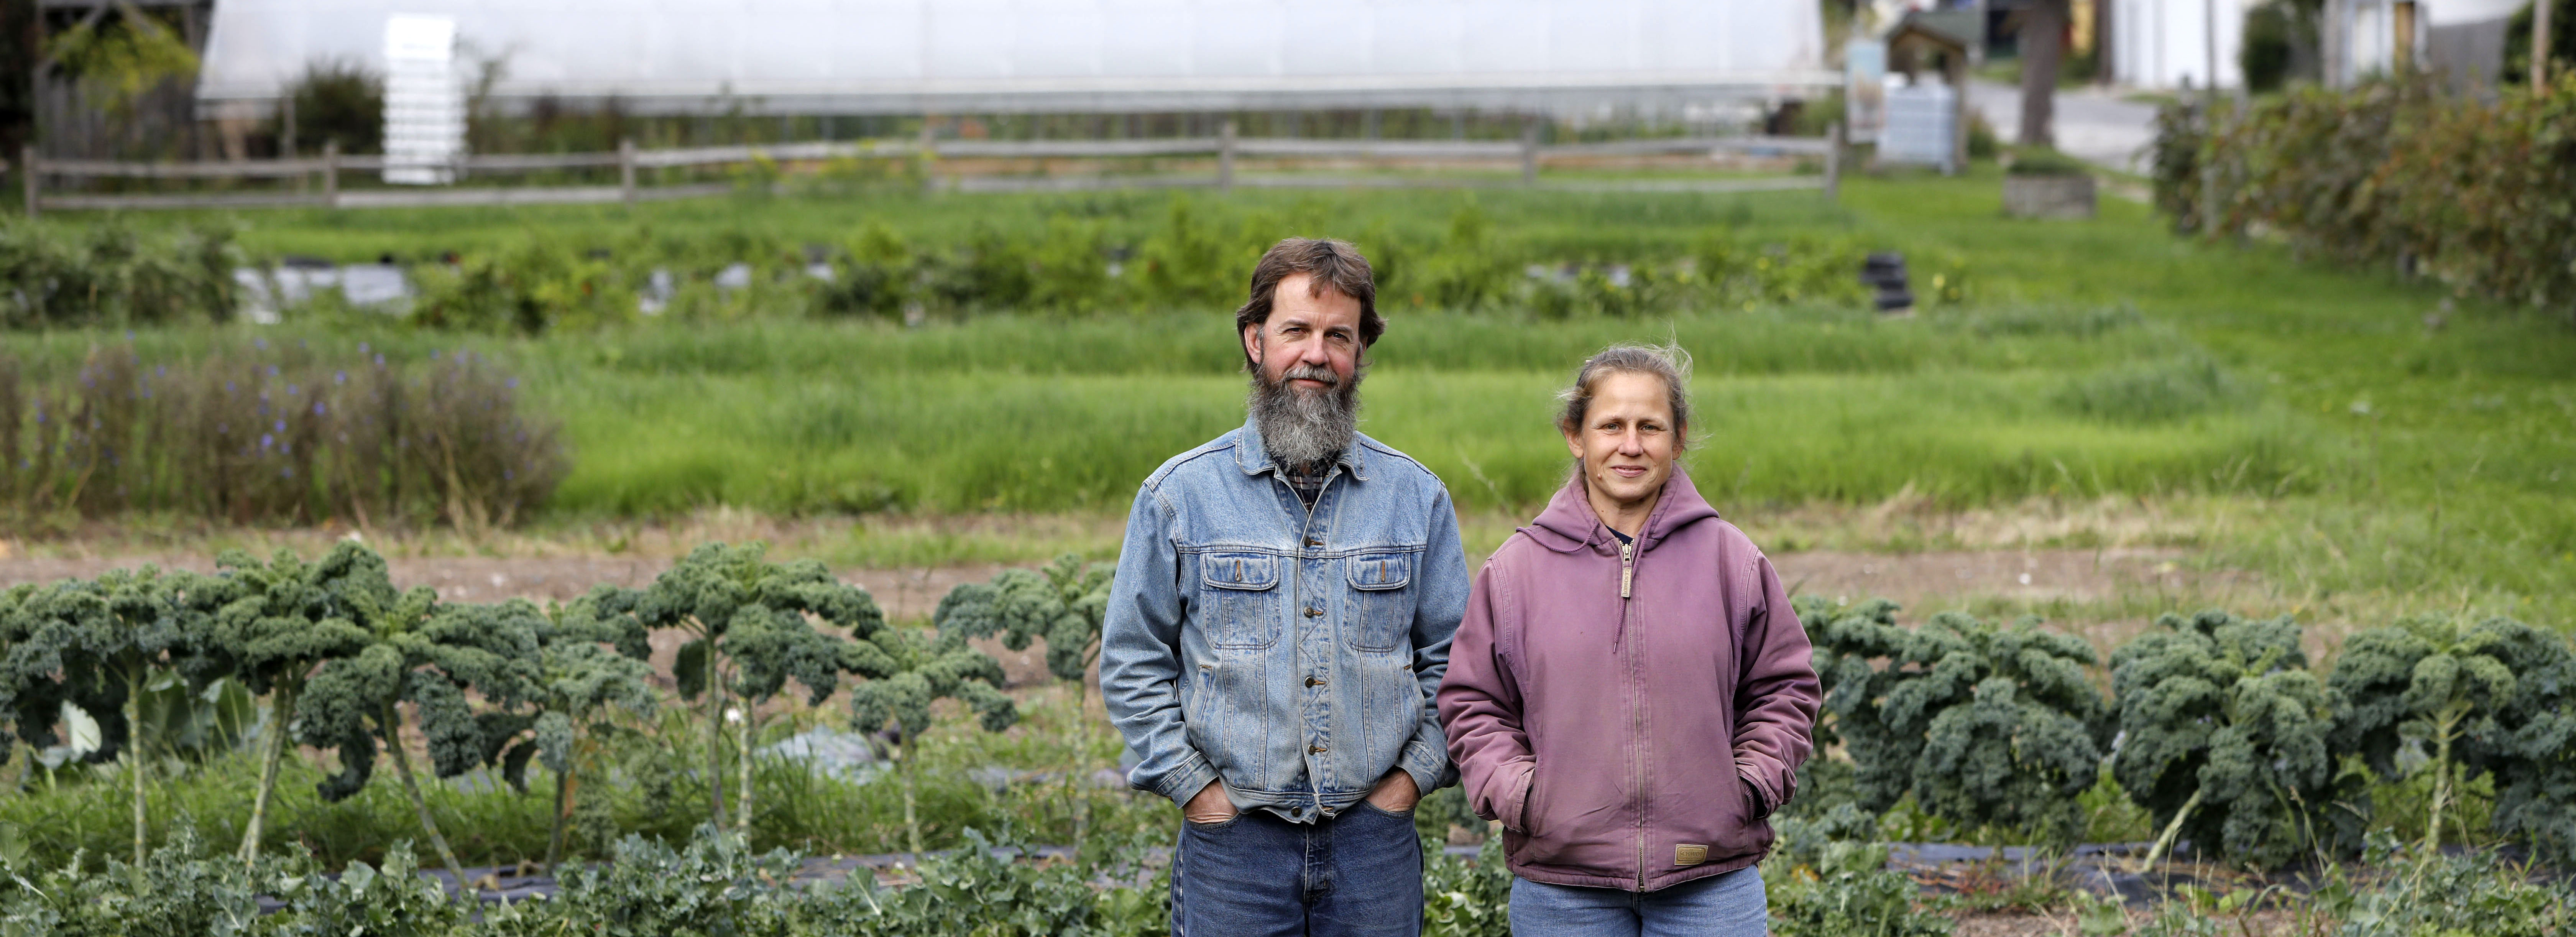 Mark and Janice Stevens started the Wilson Street Urban Farm on a vacant lot behind their home on Fillmore Avenue 10 years ago and have grown it into a fixture of the community. (Derek Gee/Buffalo News)